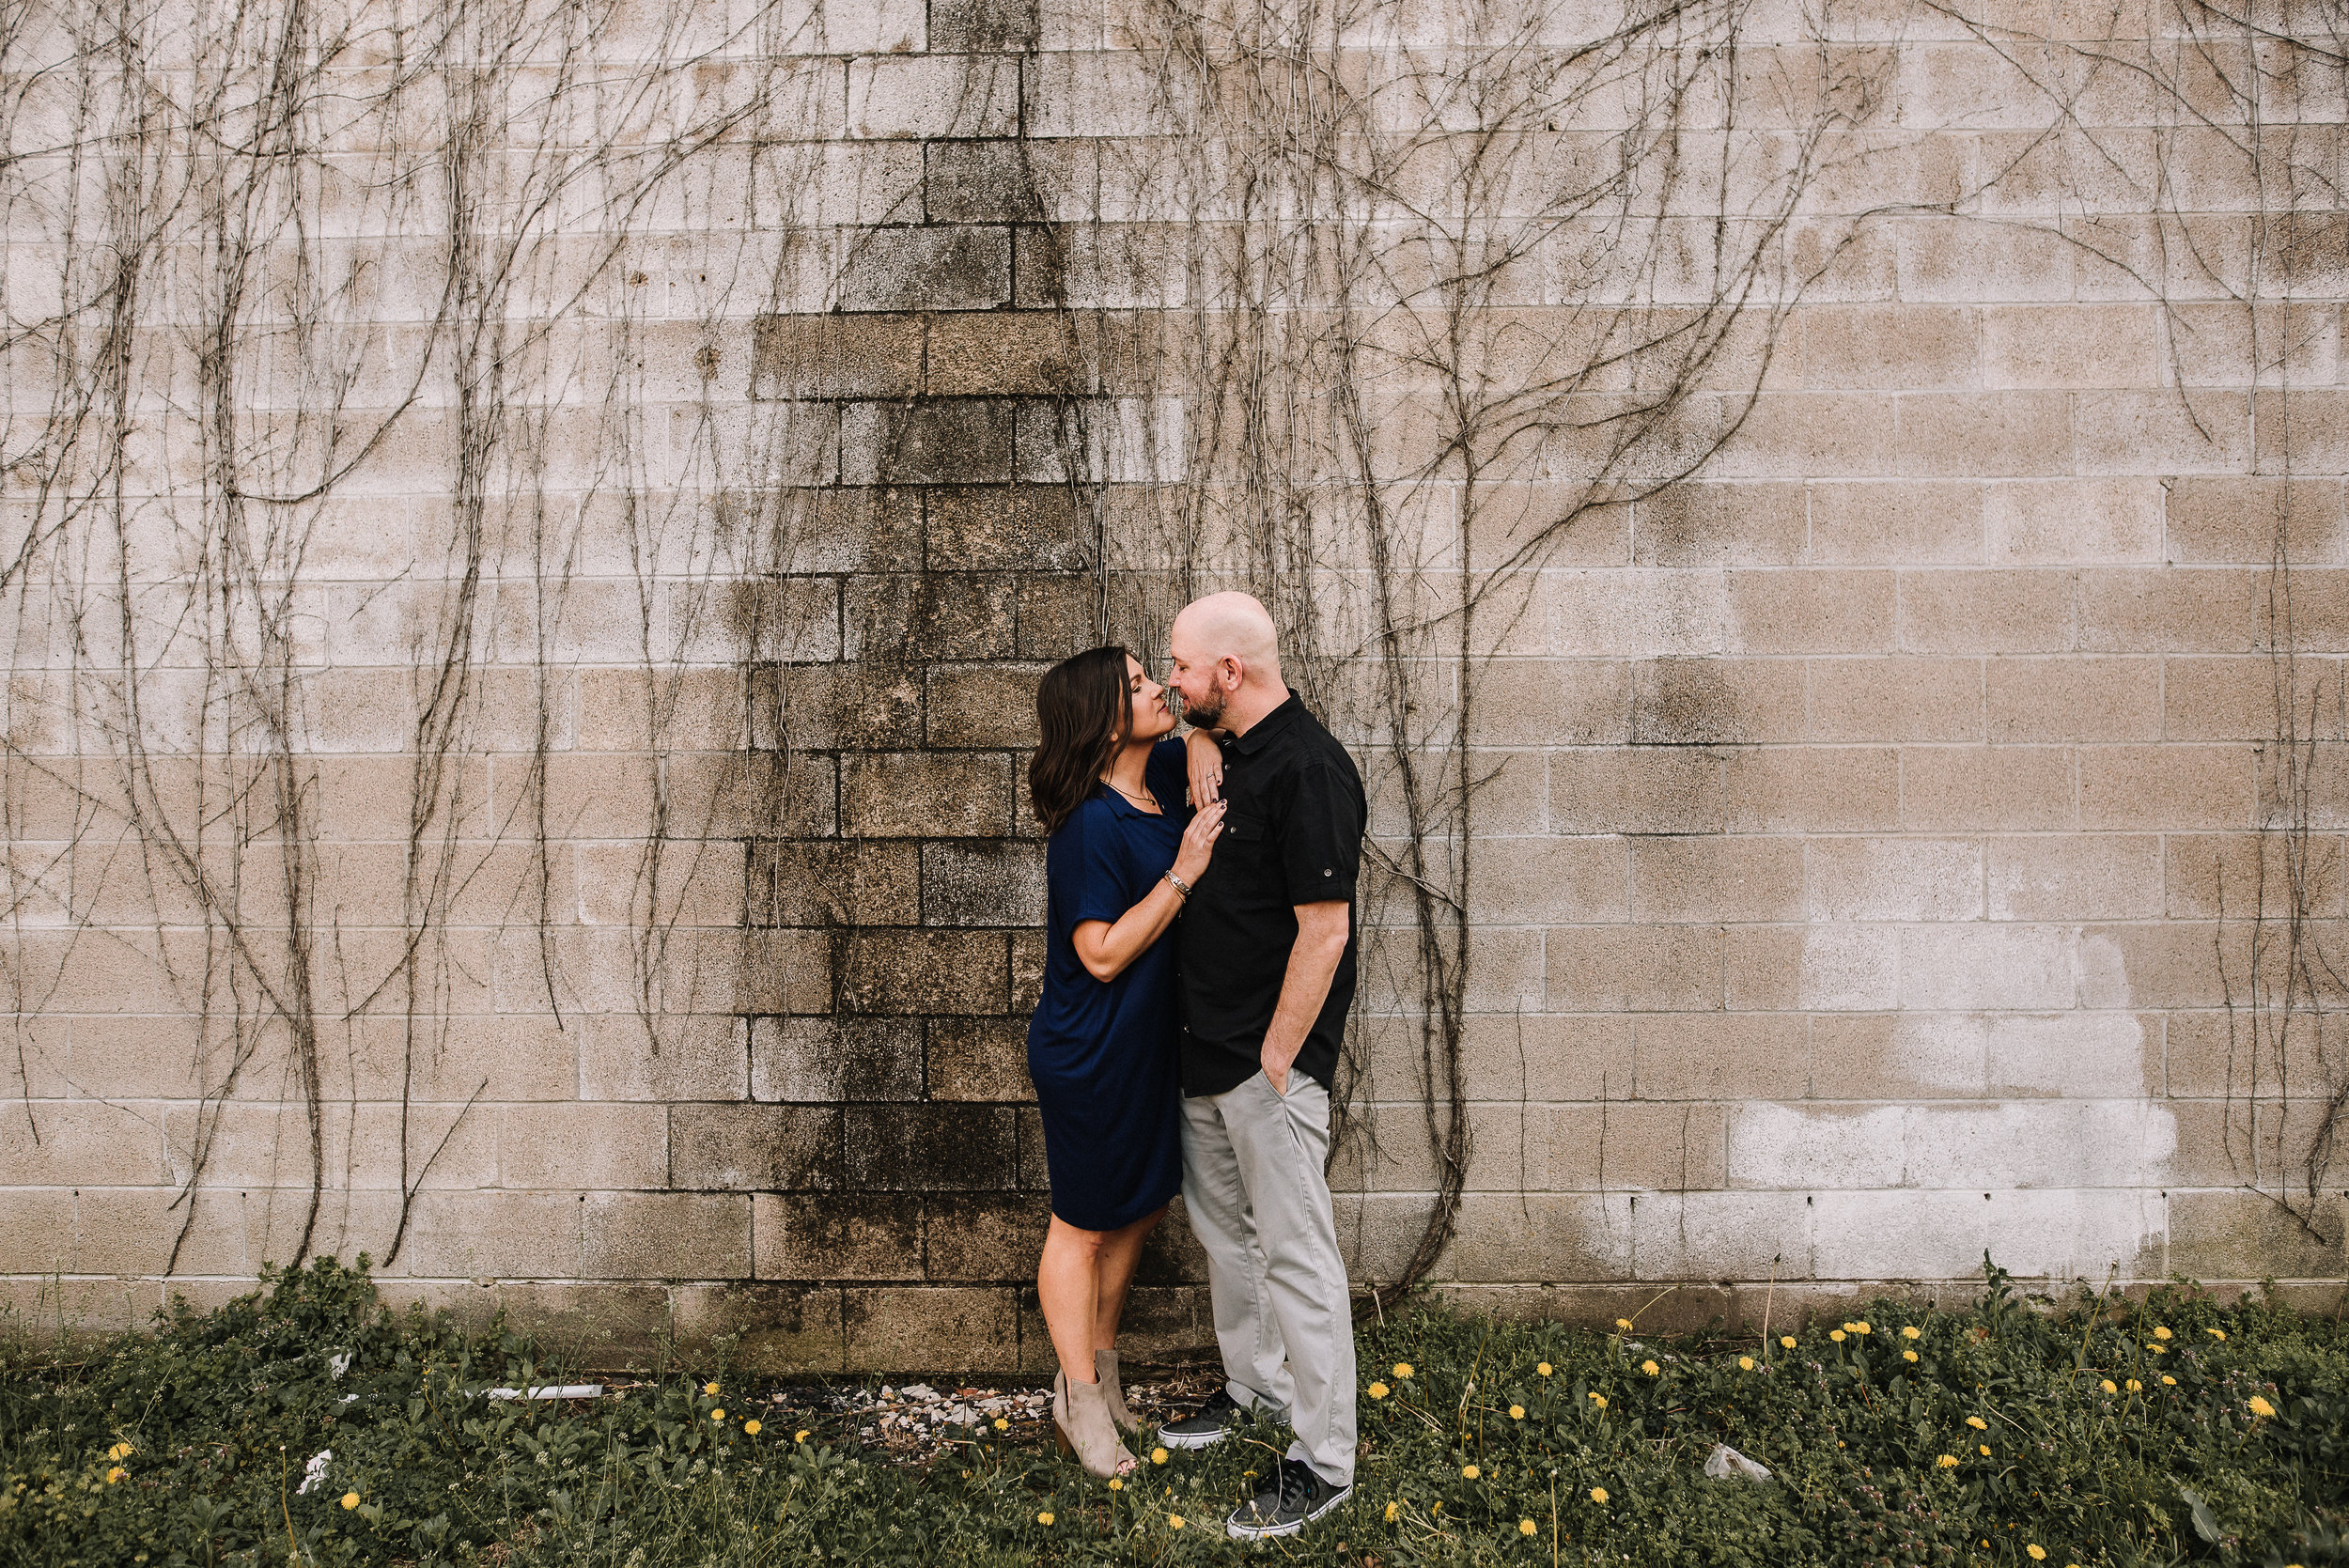 Melissa+Andy_Downtown-Memphis-Engagement-Session_Ashley-Benham-Photography-4977.jpg